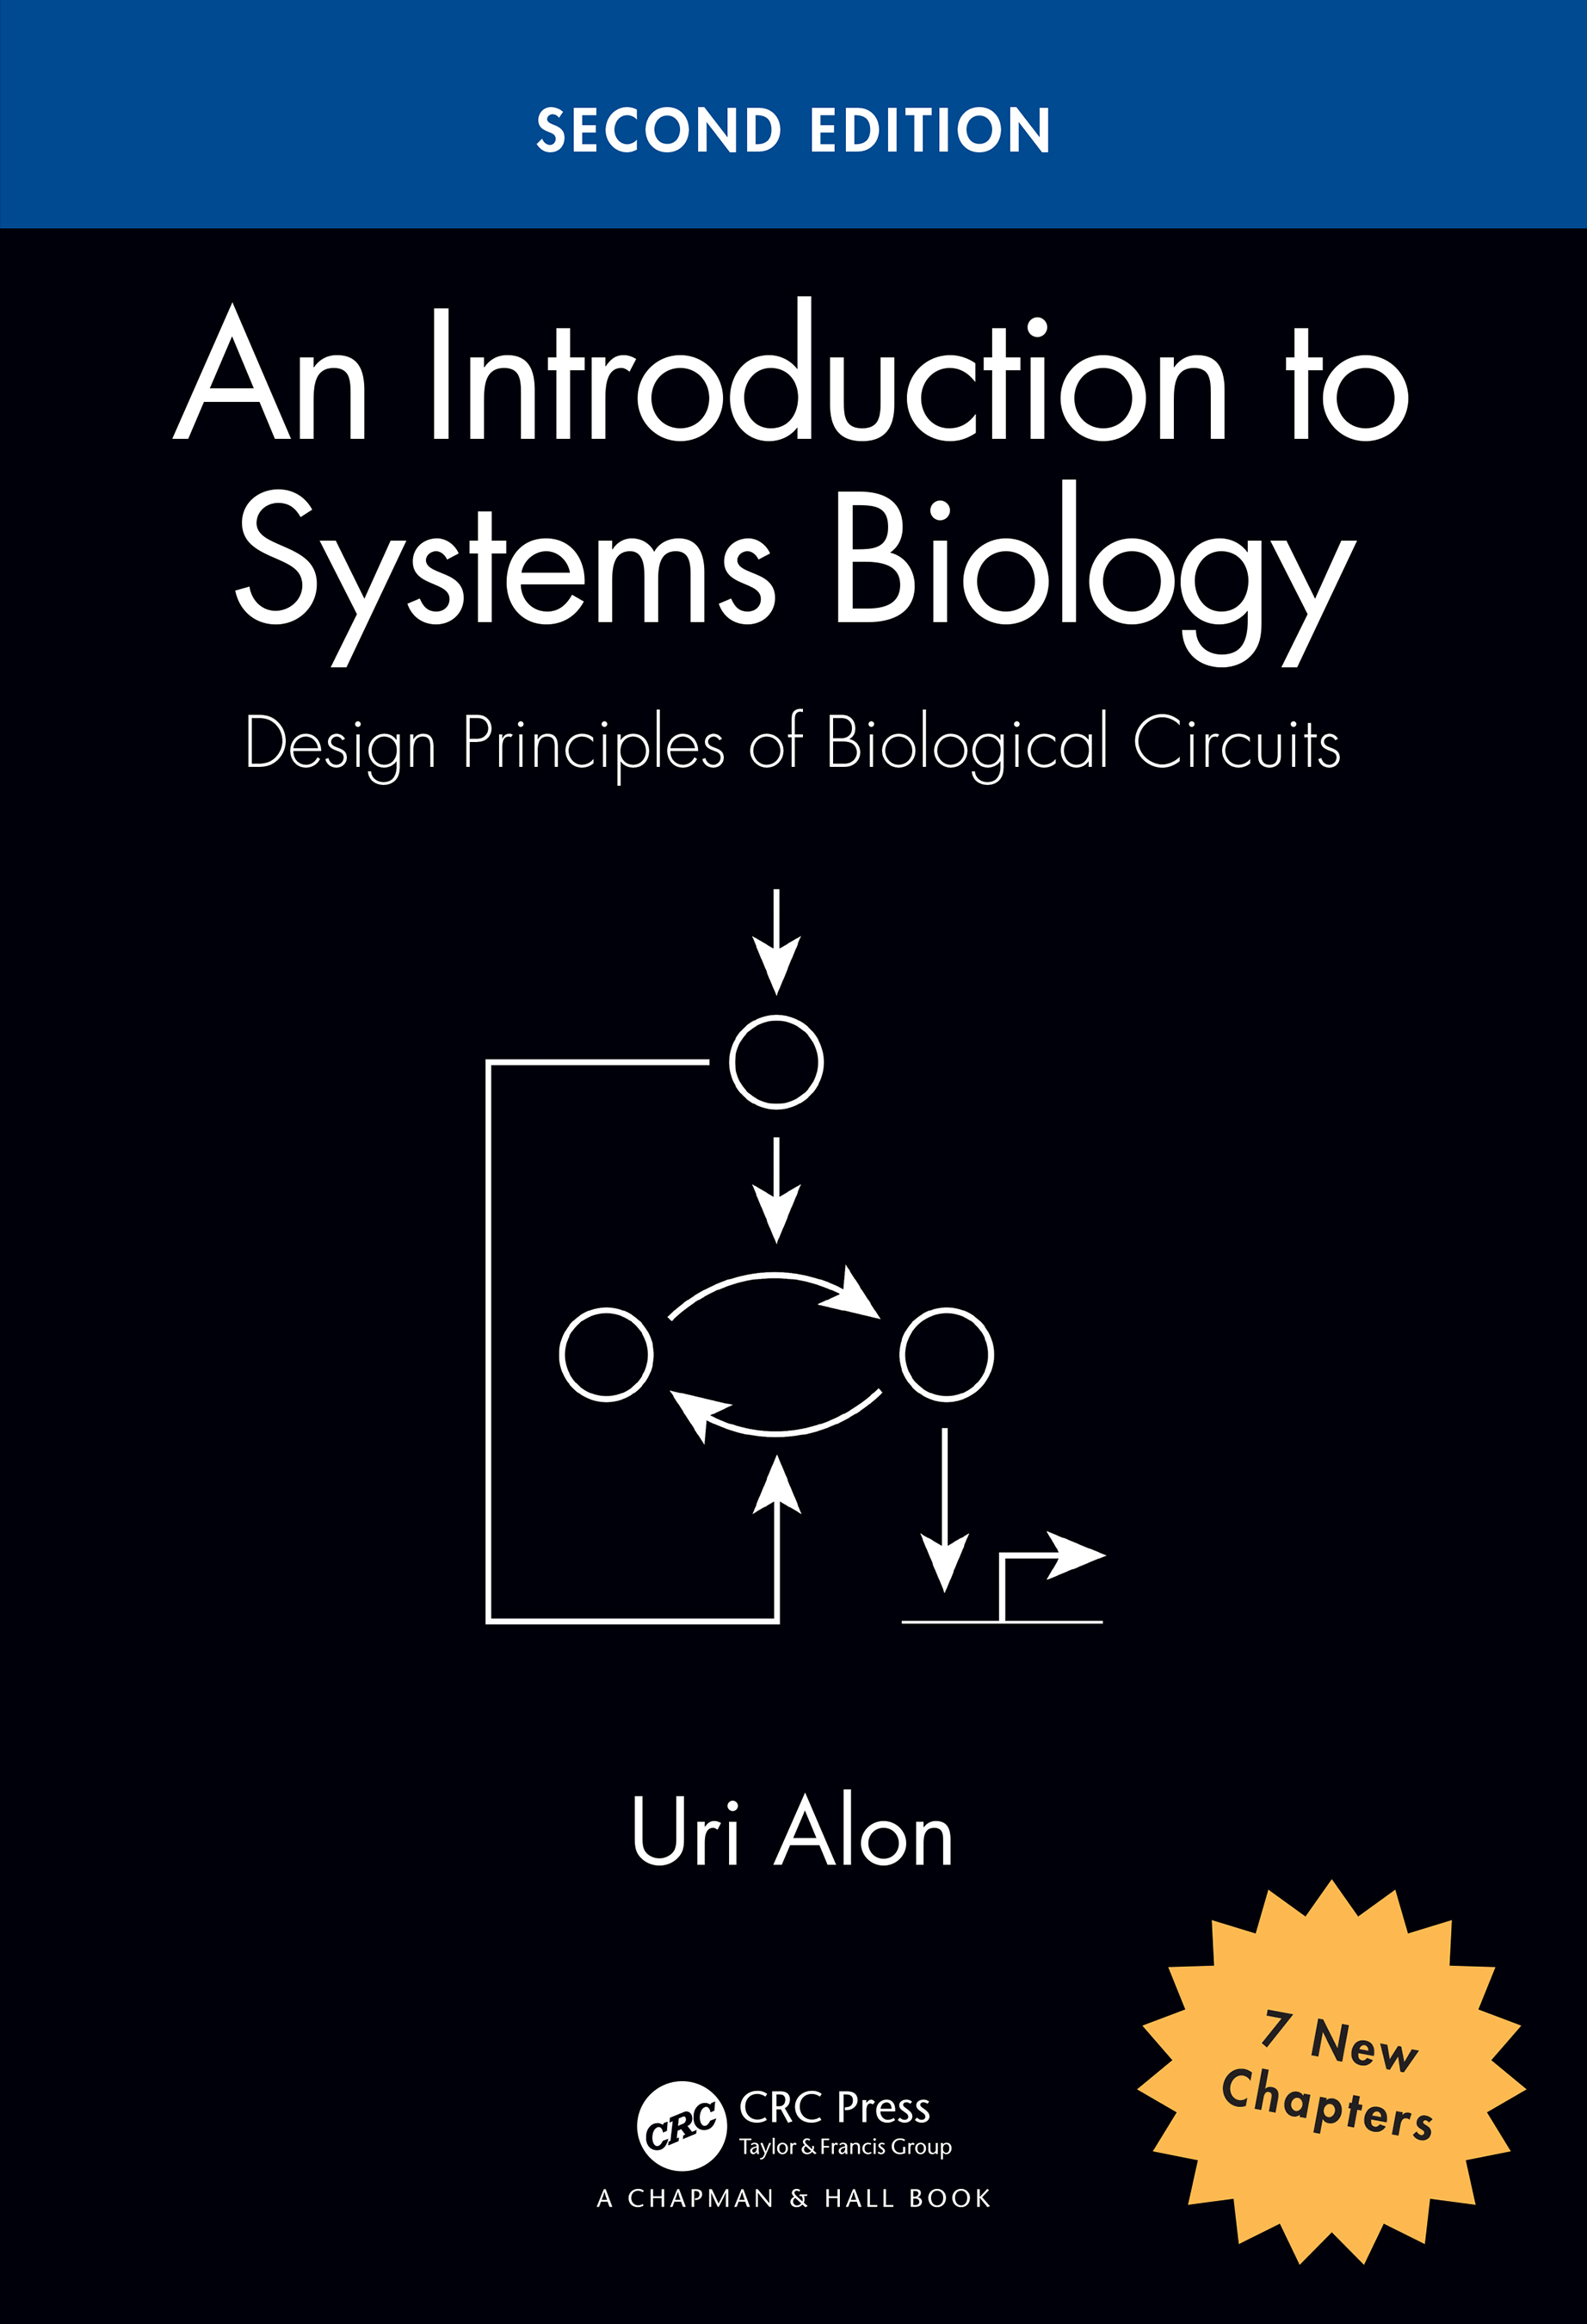 An Introduction to Systems Biology: Design Principles of Biological Circuits, Second Edition book cover